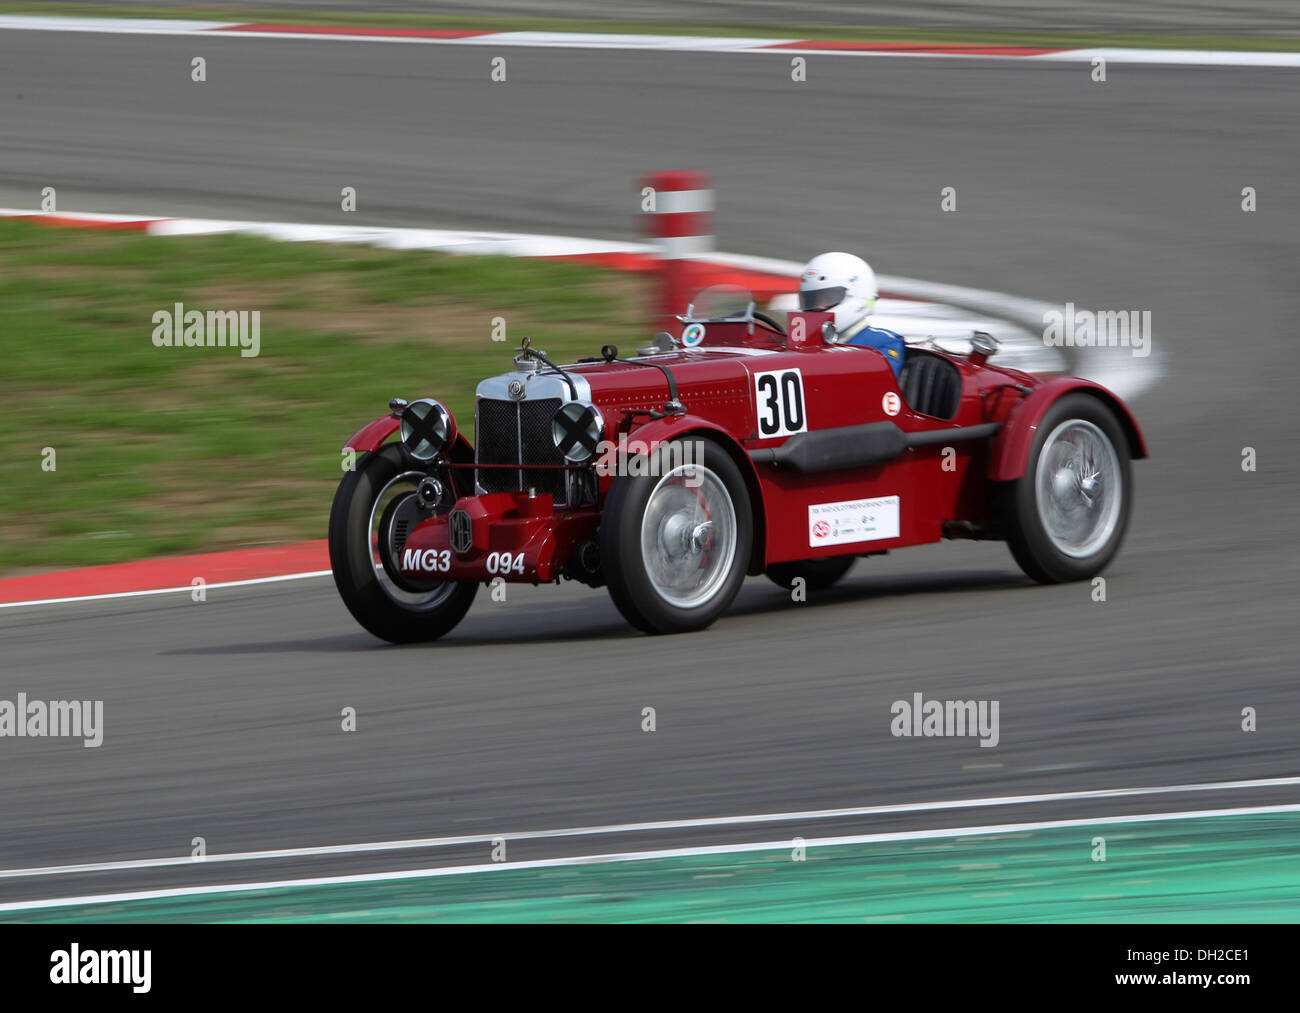 Mg Magnette Stock Photos & Mg Magnette Stock Images - Alamy